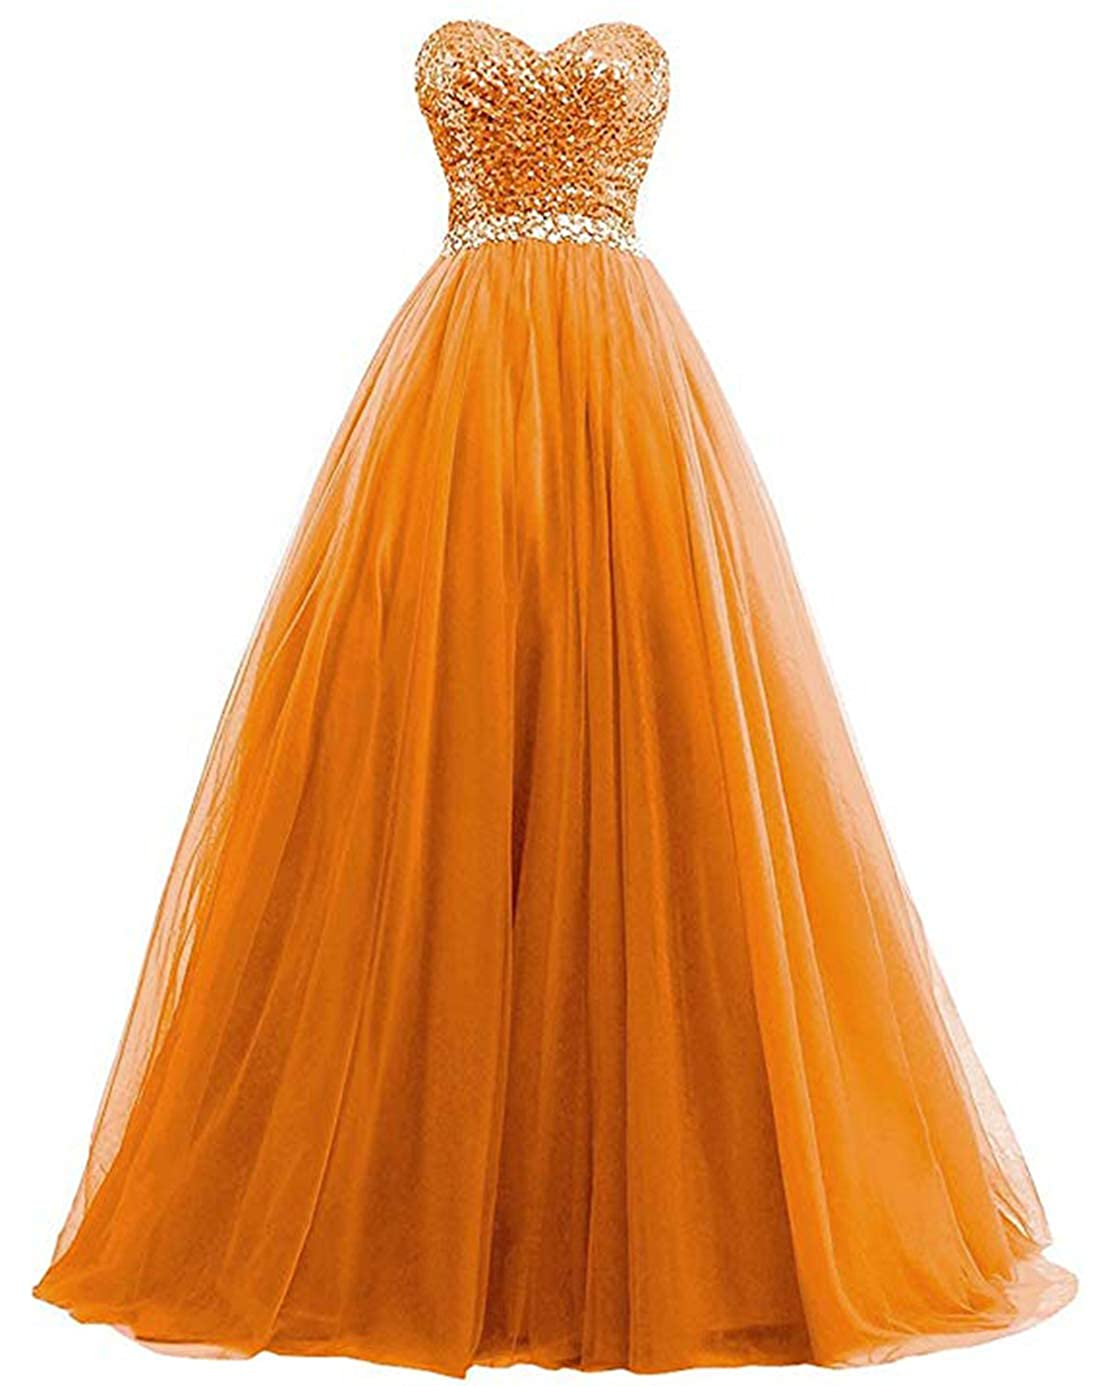 orange olise bridal Sexy Sweetheart Women's A Line Long Prom Dresses Sequin Party Formal Dresses Ball Gowns